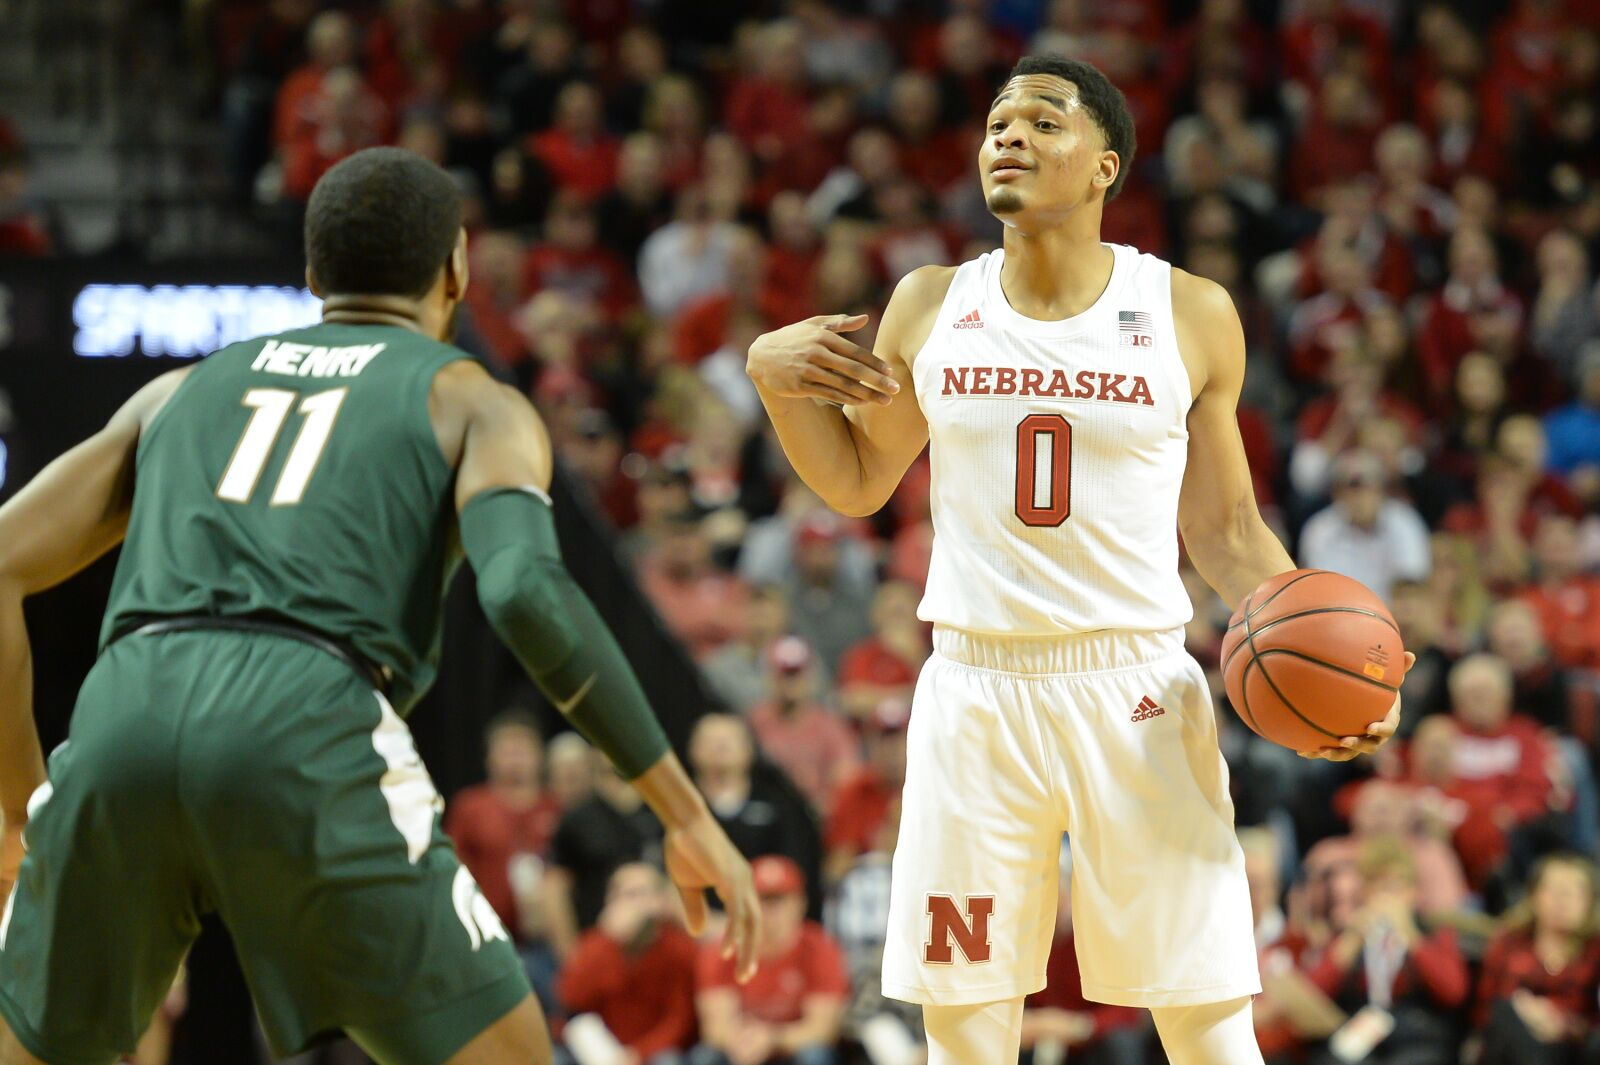 a8c85574234 Wisconsin Basketball: Badgers look to keep win streak alive in Lincoln